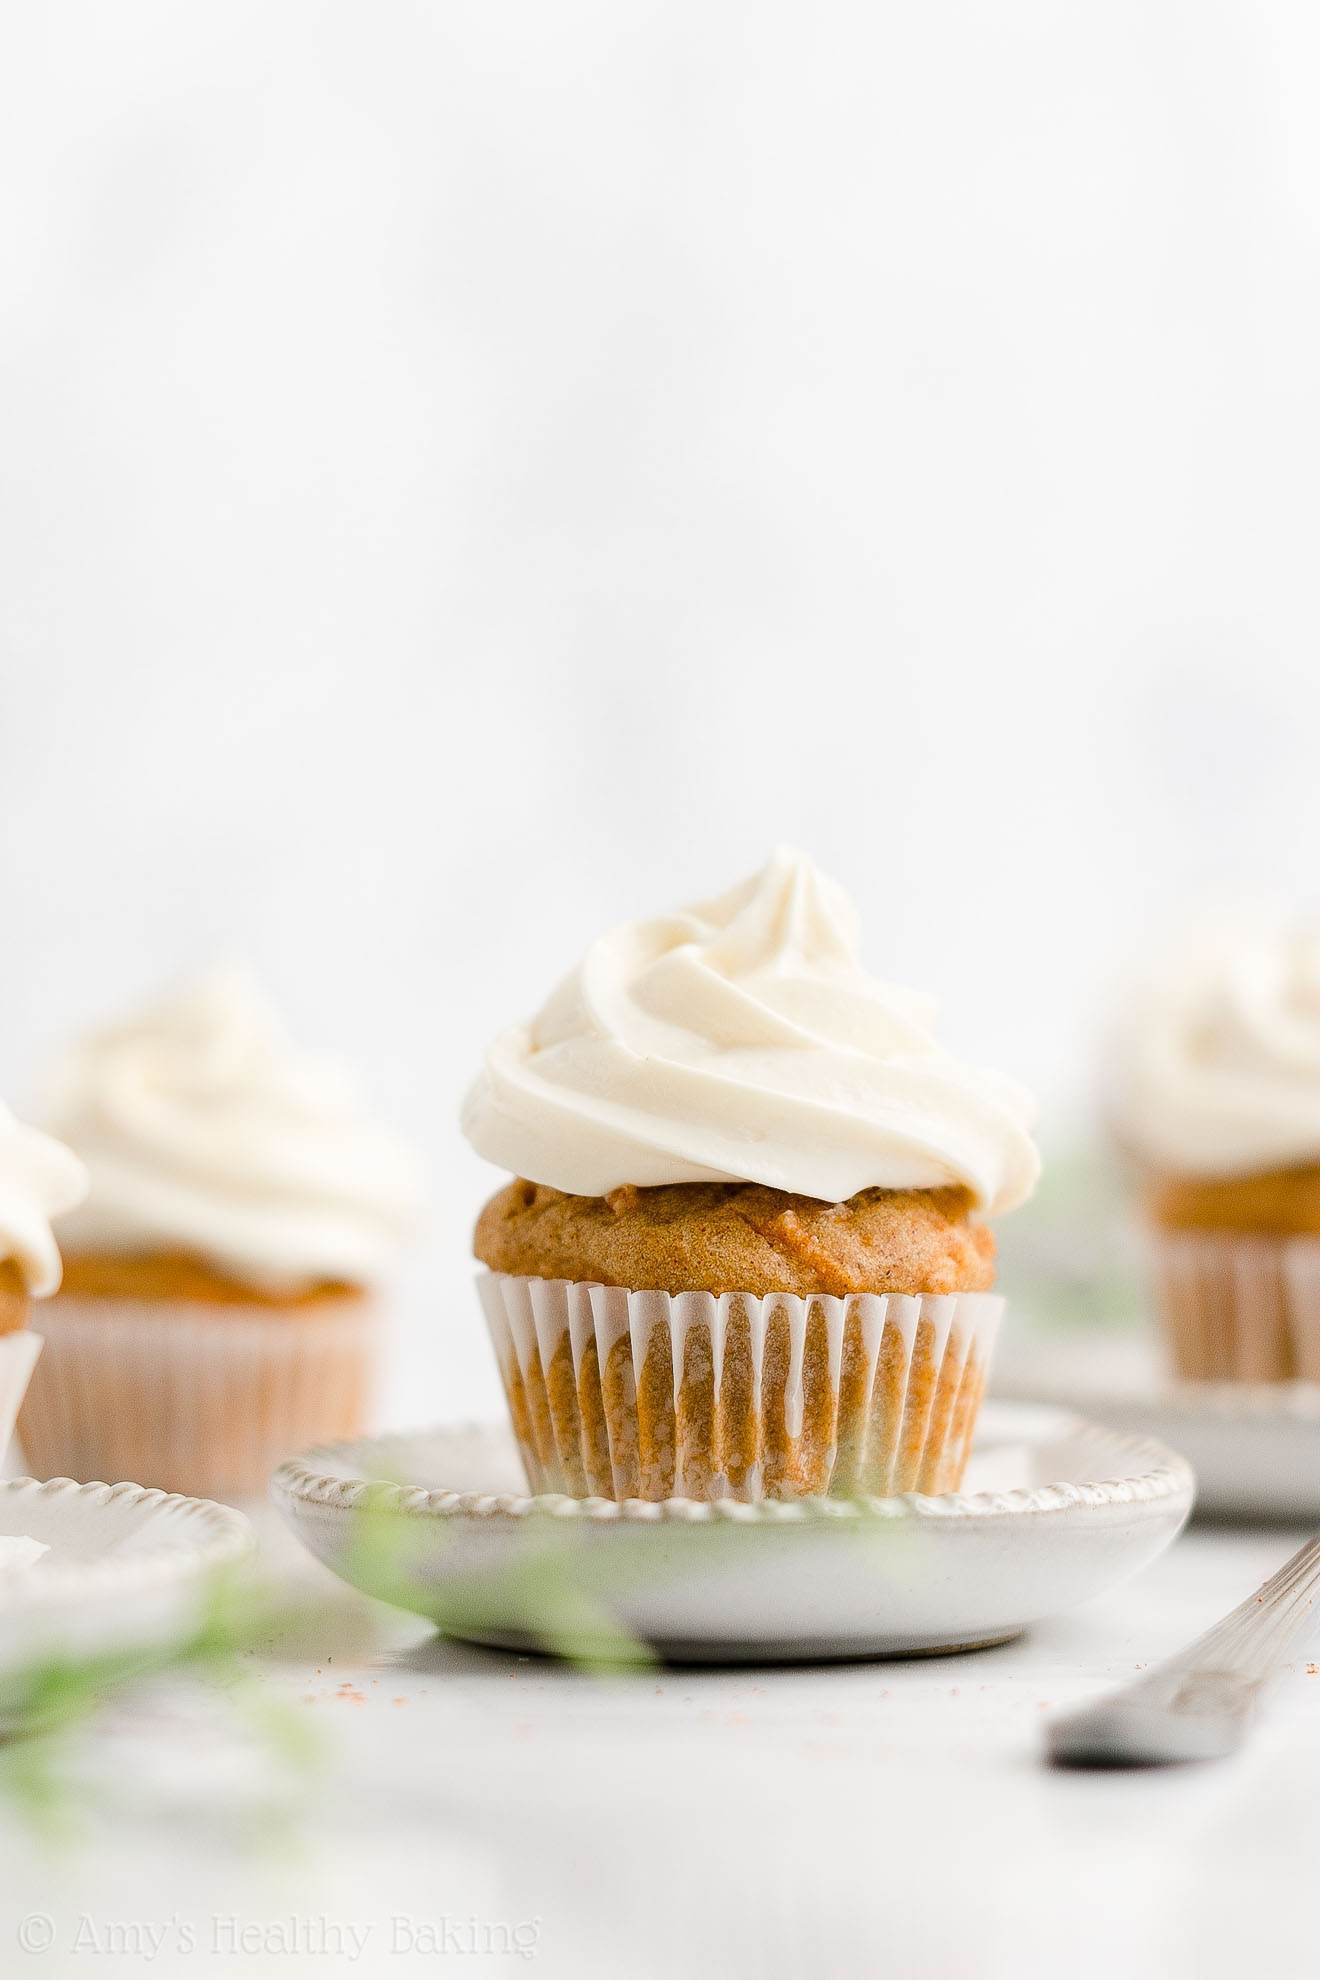 ULTIMATE Healthy Clean Eating No Sugar Low Calorie Mini Carrot Cake Cupcakes